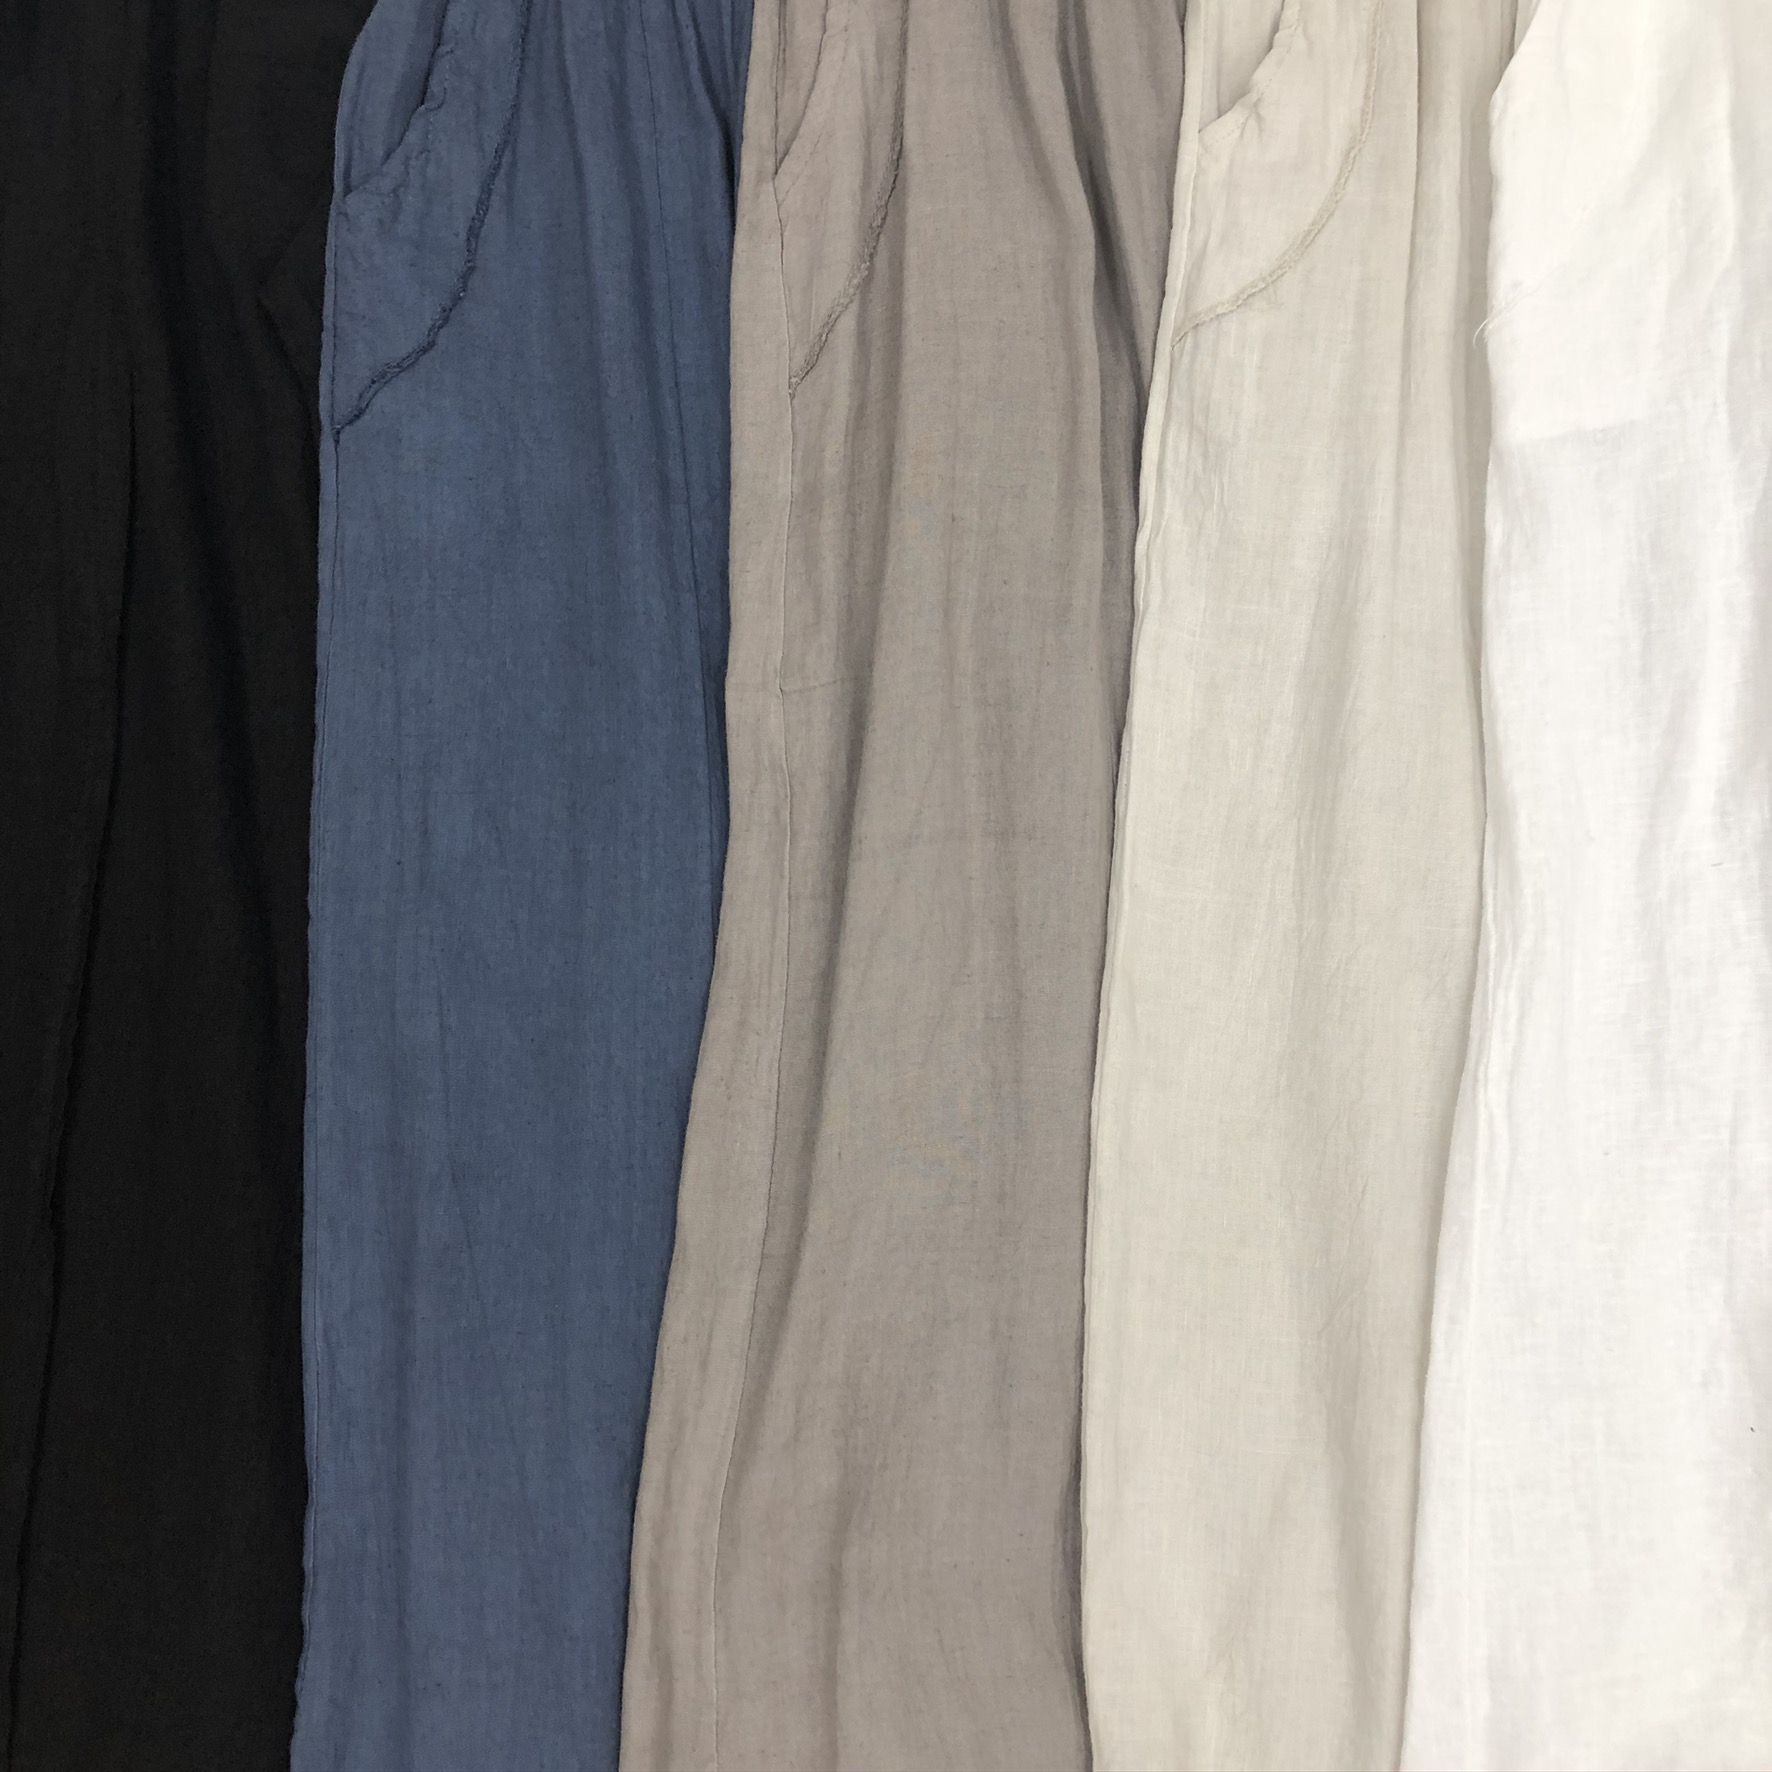 Pants with Pockets Color Swatches